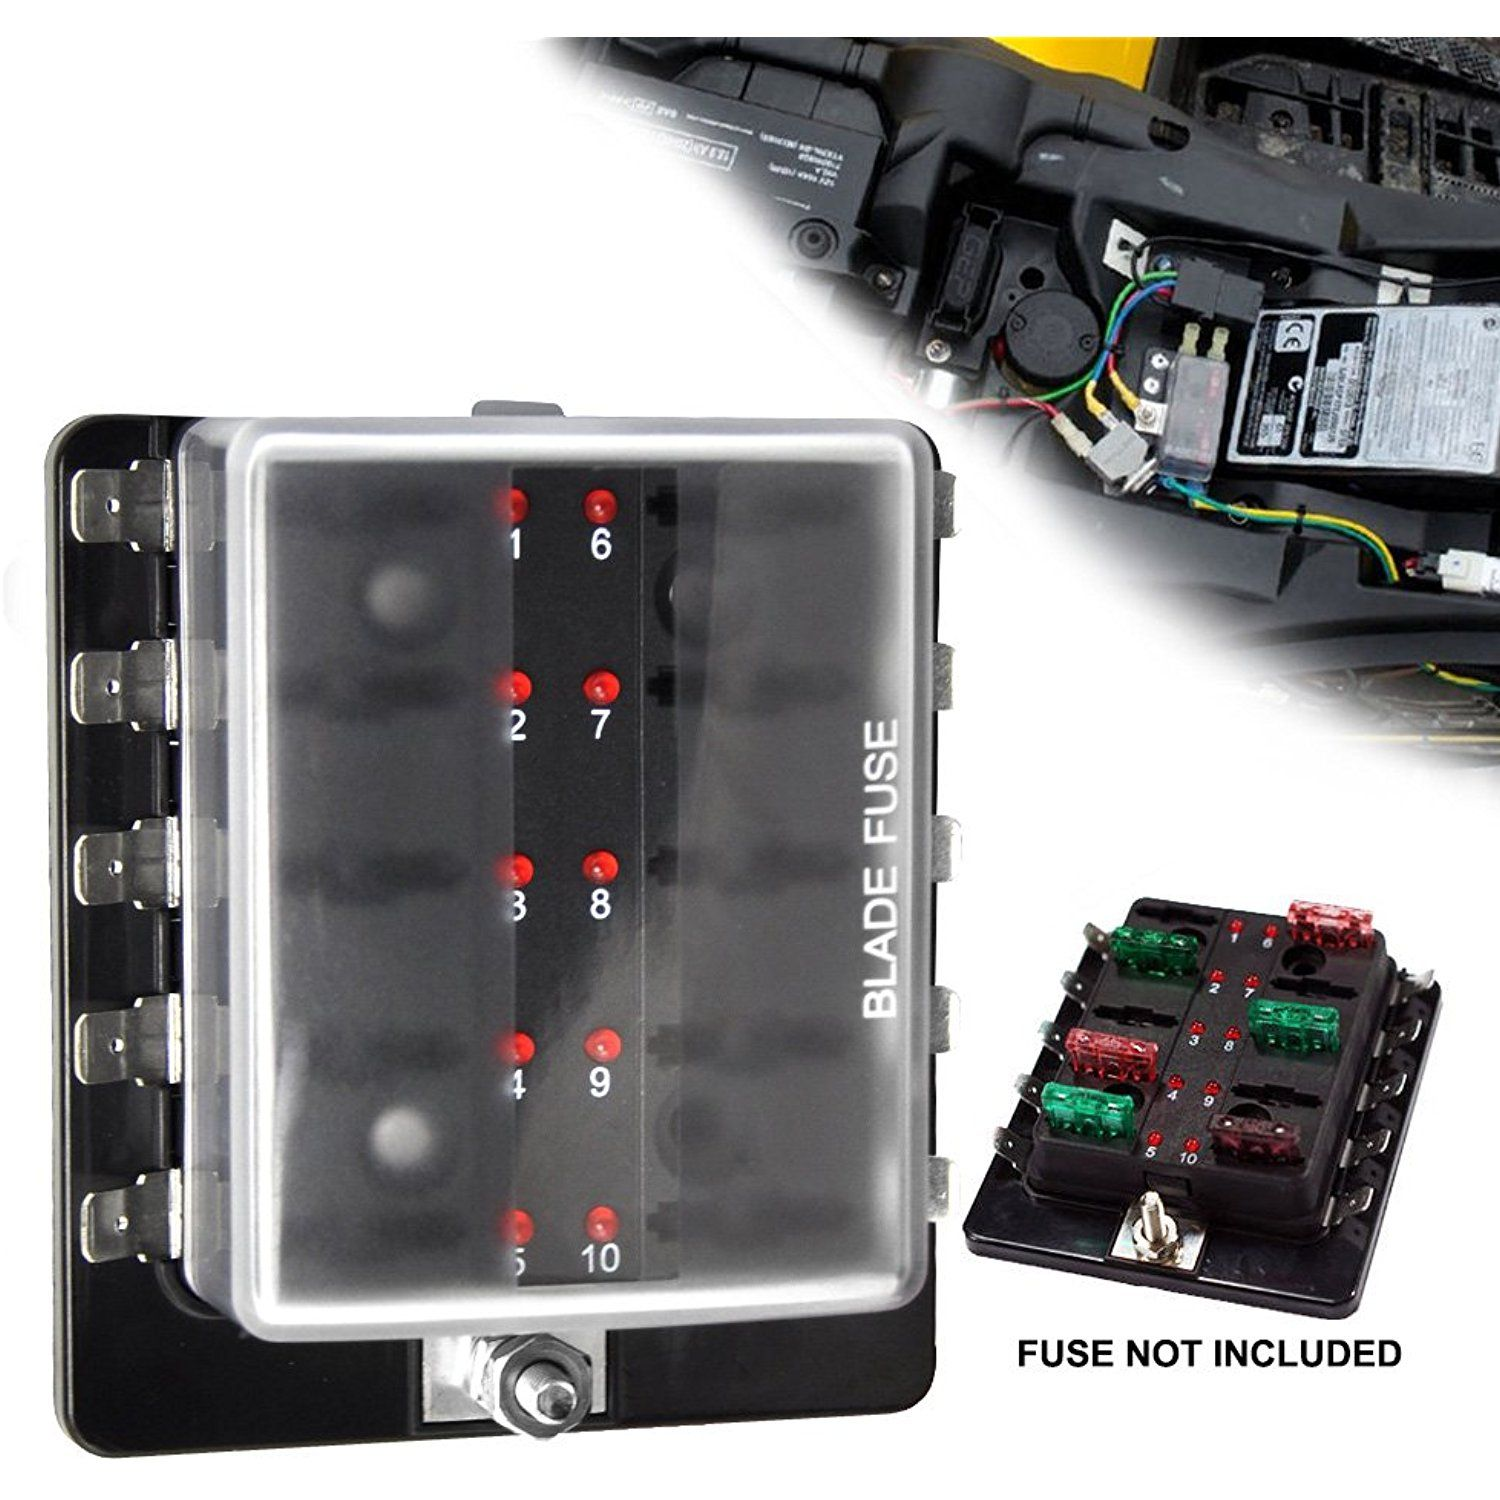 liteway 10 way blade fuse holder box 12 32v led illuminated automotive fuse block for car boat marine trike with led warning light kit 2 years warranty  [ 1500 x 1500 Pixel ]